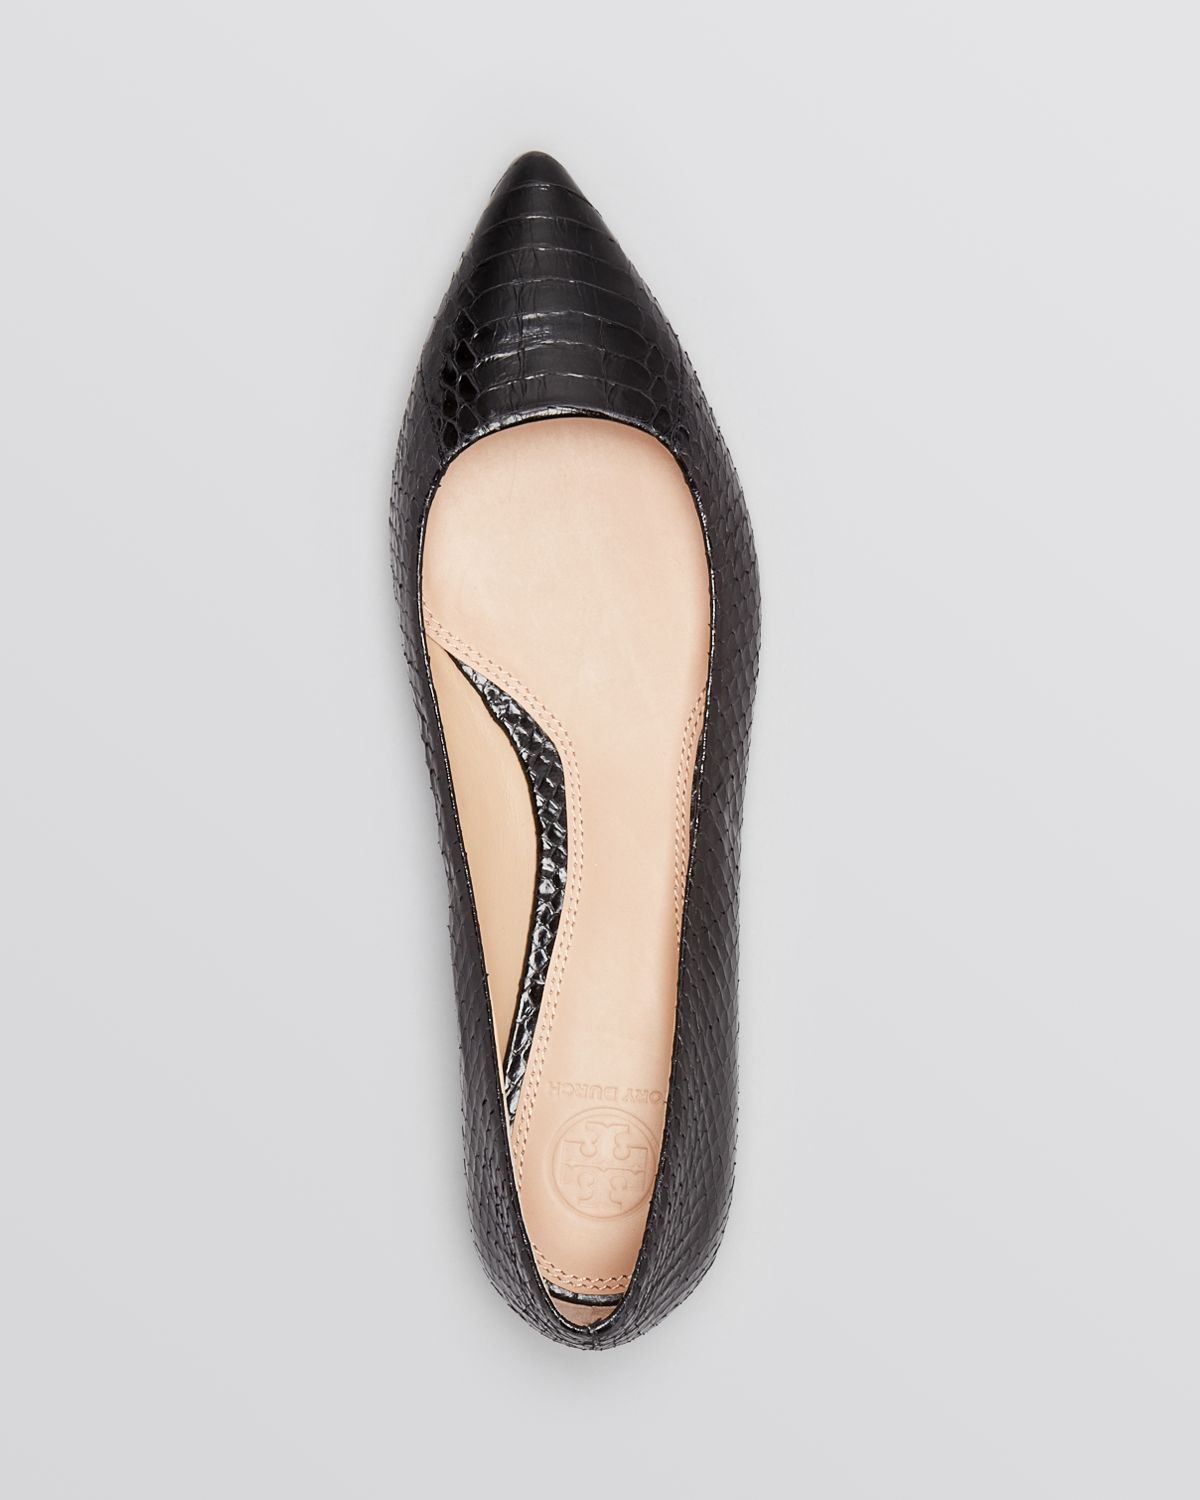 d8835c91d Lyst - Tory Burch Pointed Toe Flats - Bedford Snakeskin in Black